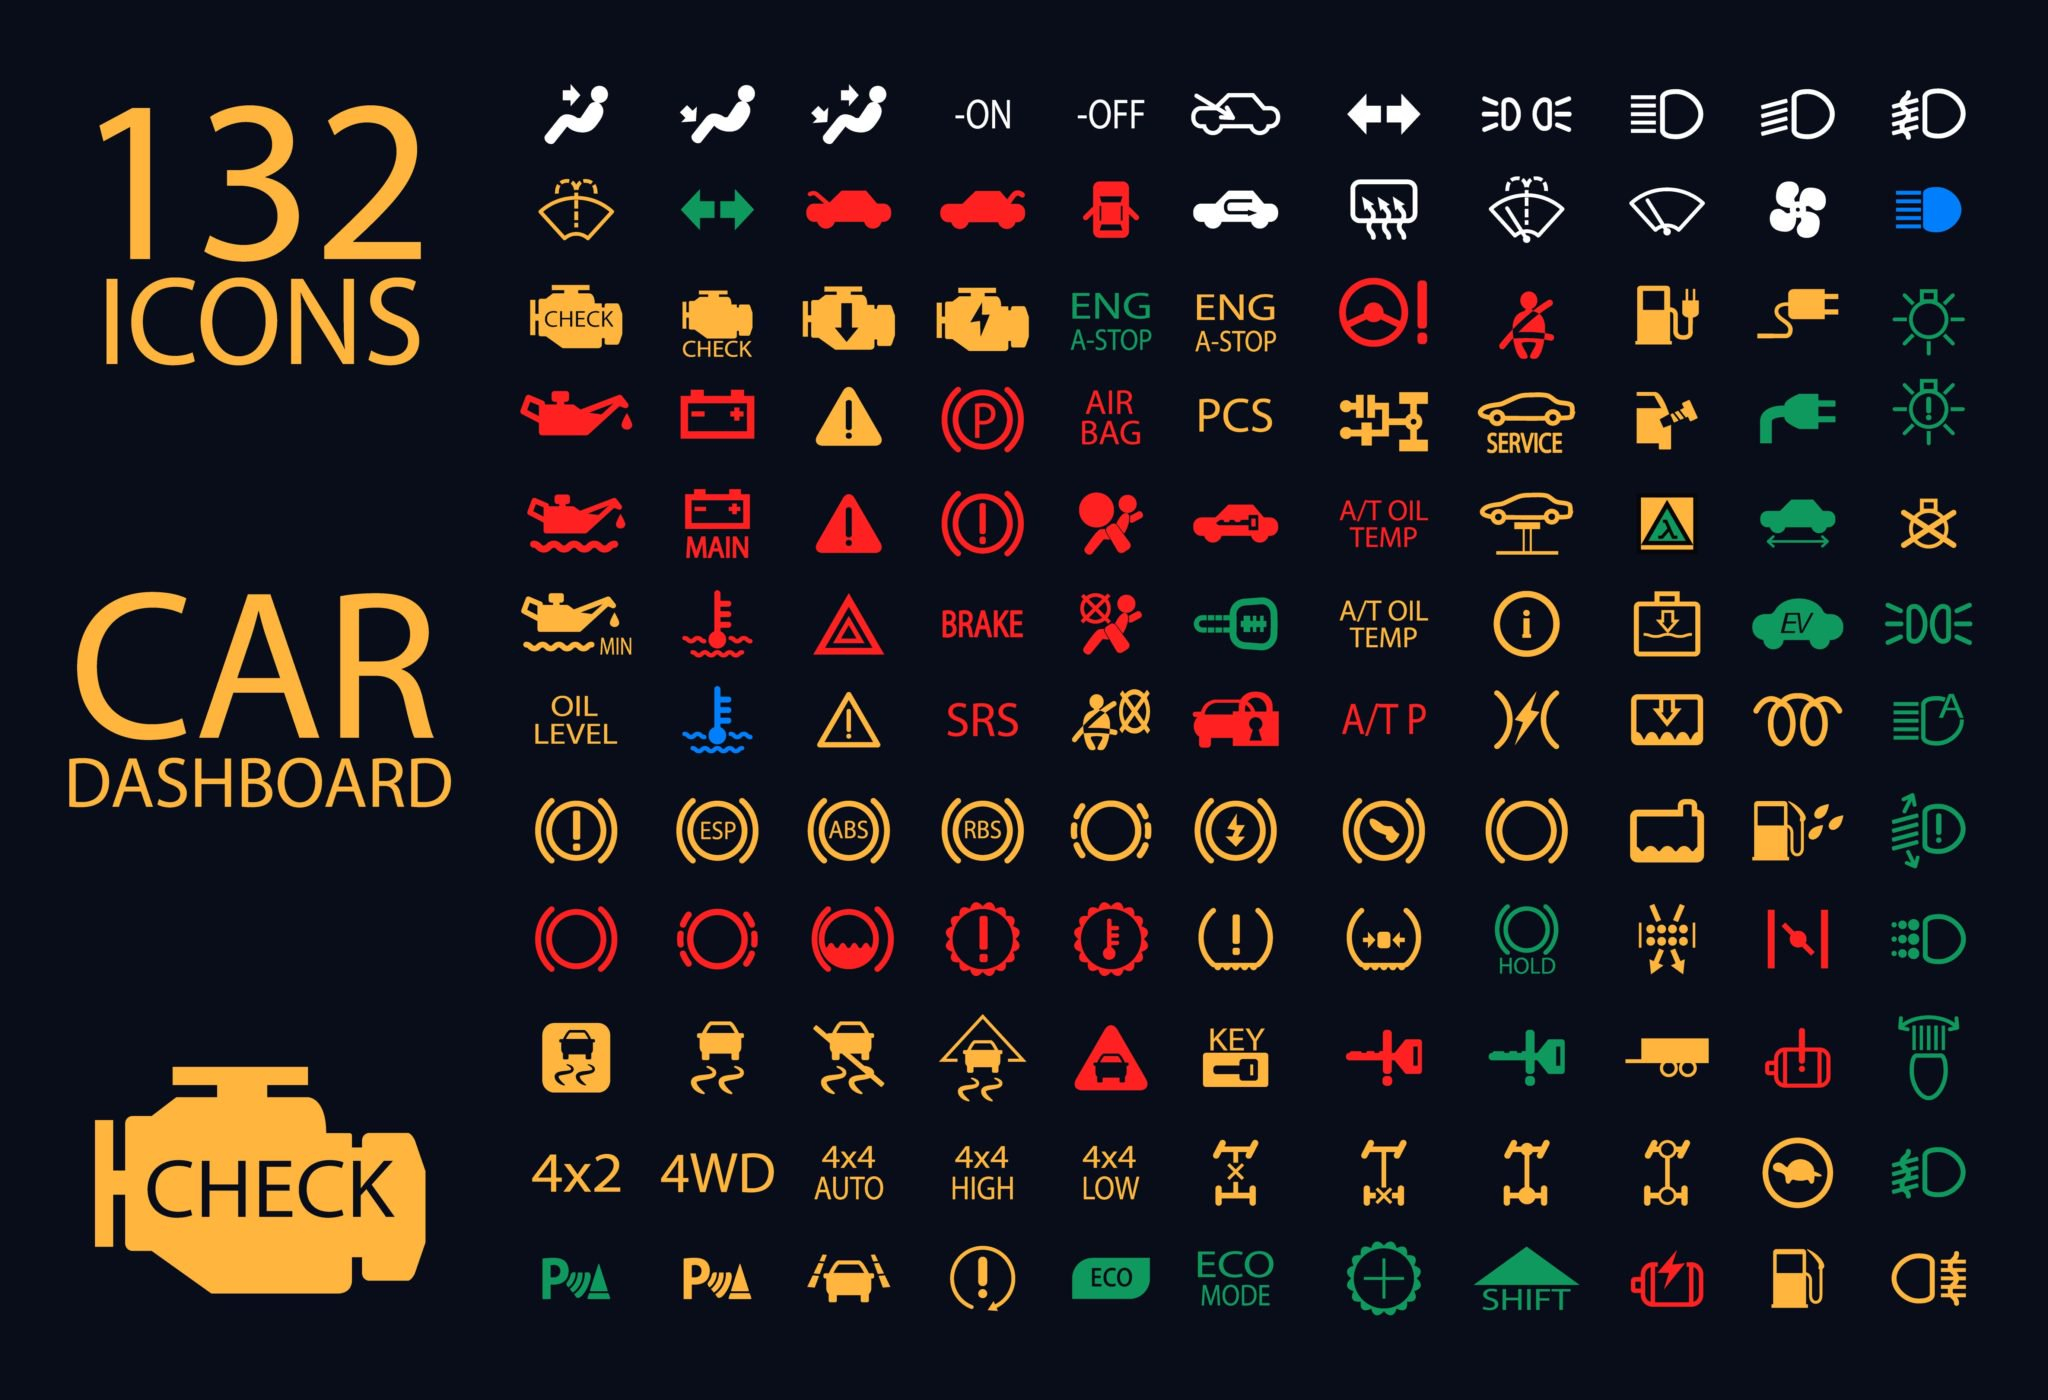 Car Dashboard Diagram If You See These Warning Lights On Your Car Dashboard Stop Your Car